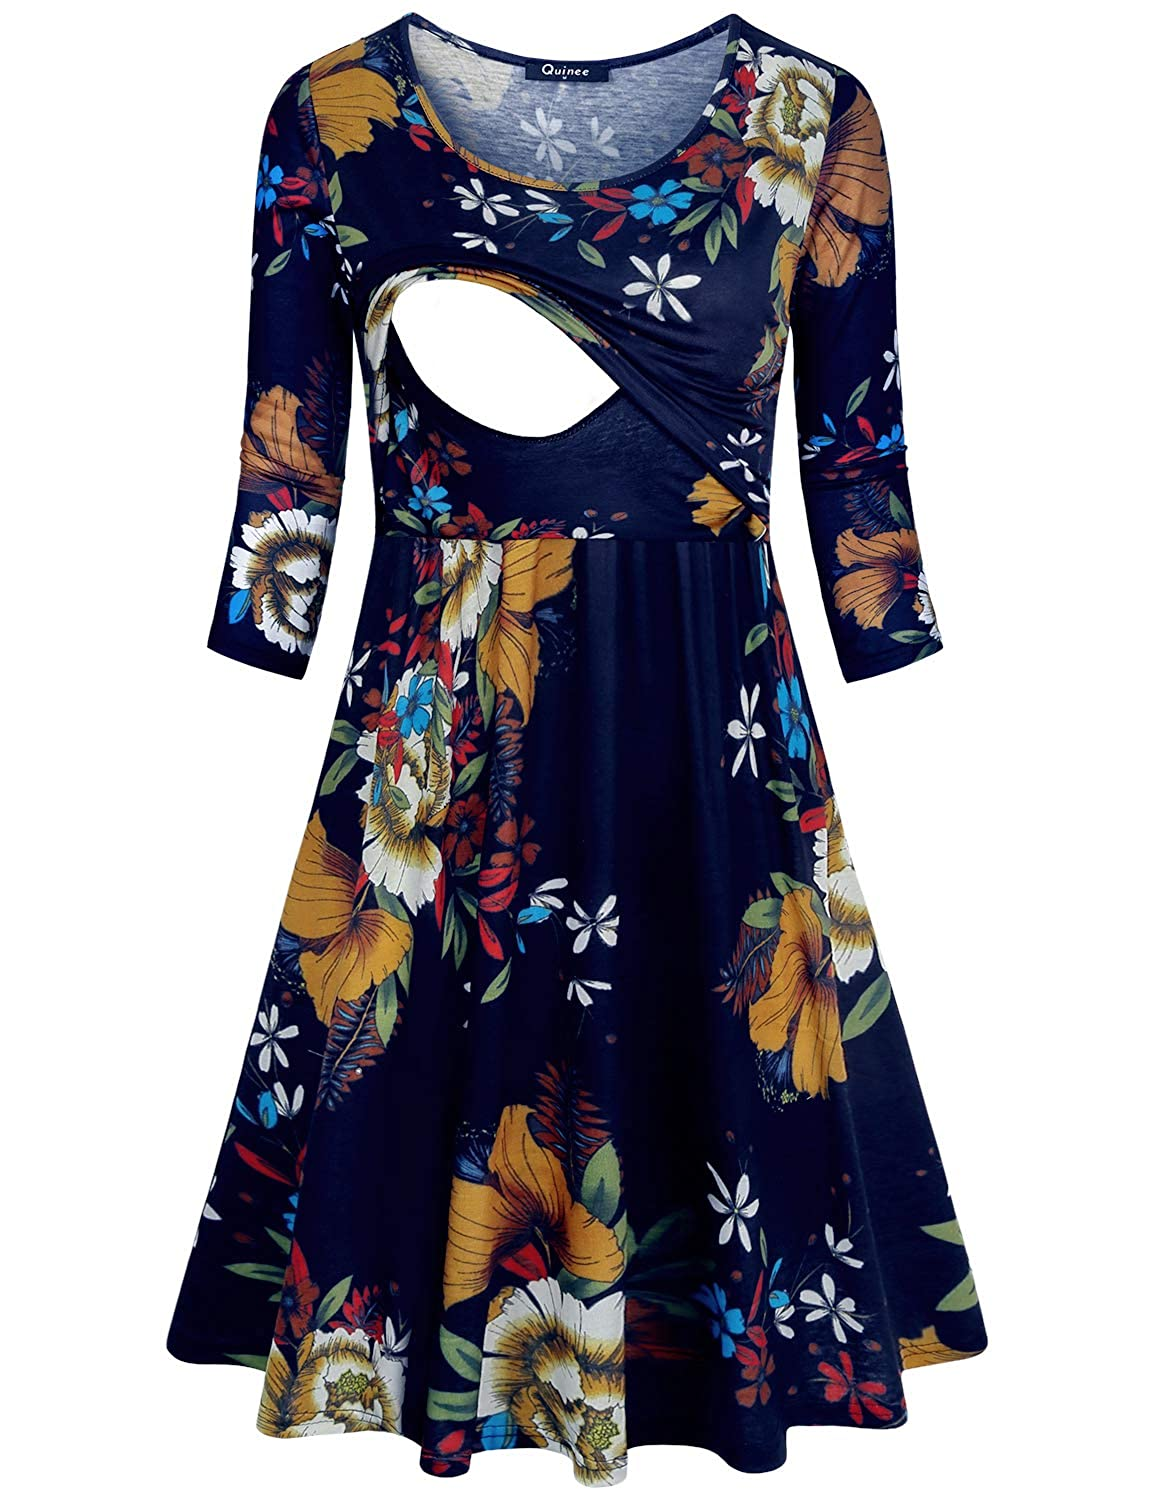 Quinee Women Round Neck 3/4 Sleeve Floral Empire Waist Nursing Dress Breastfeeding